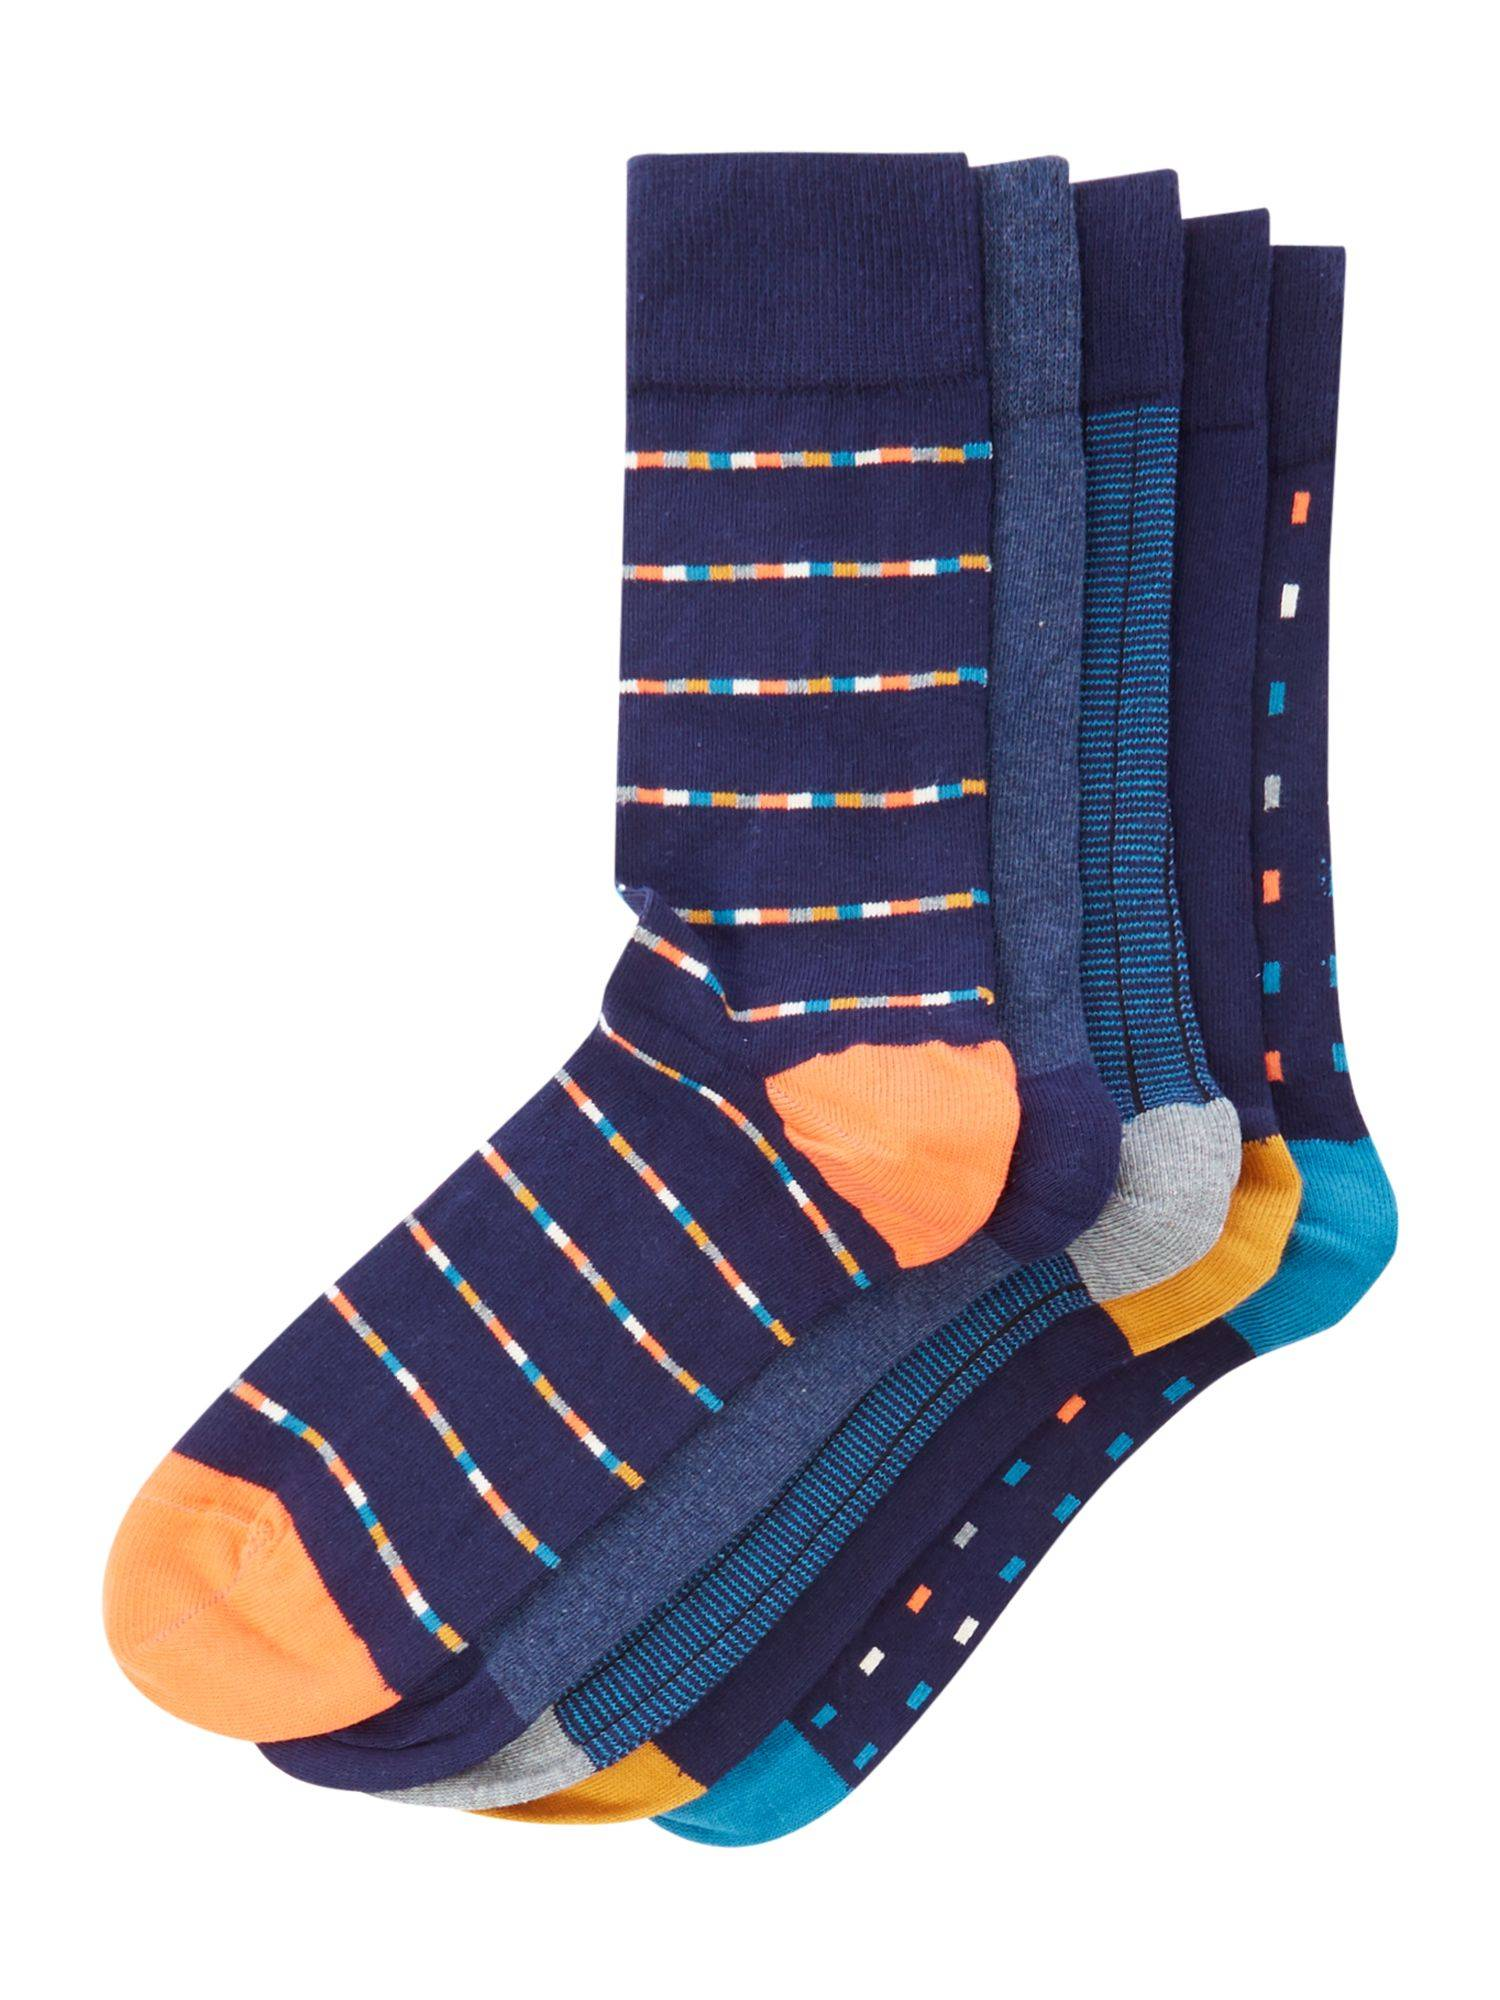 Linea Men's Linea 5 pack dash and stripe socks (One Size)